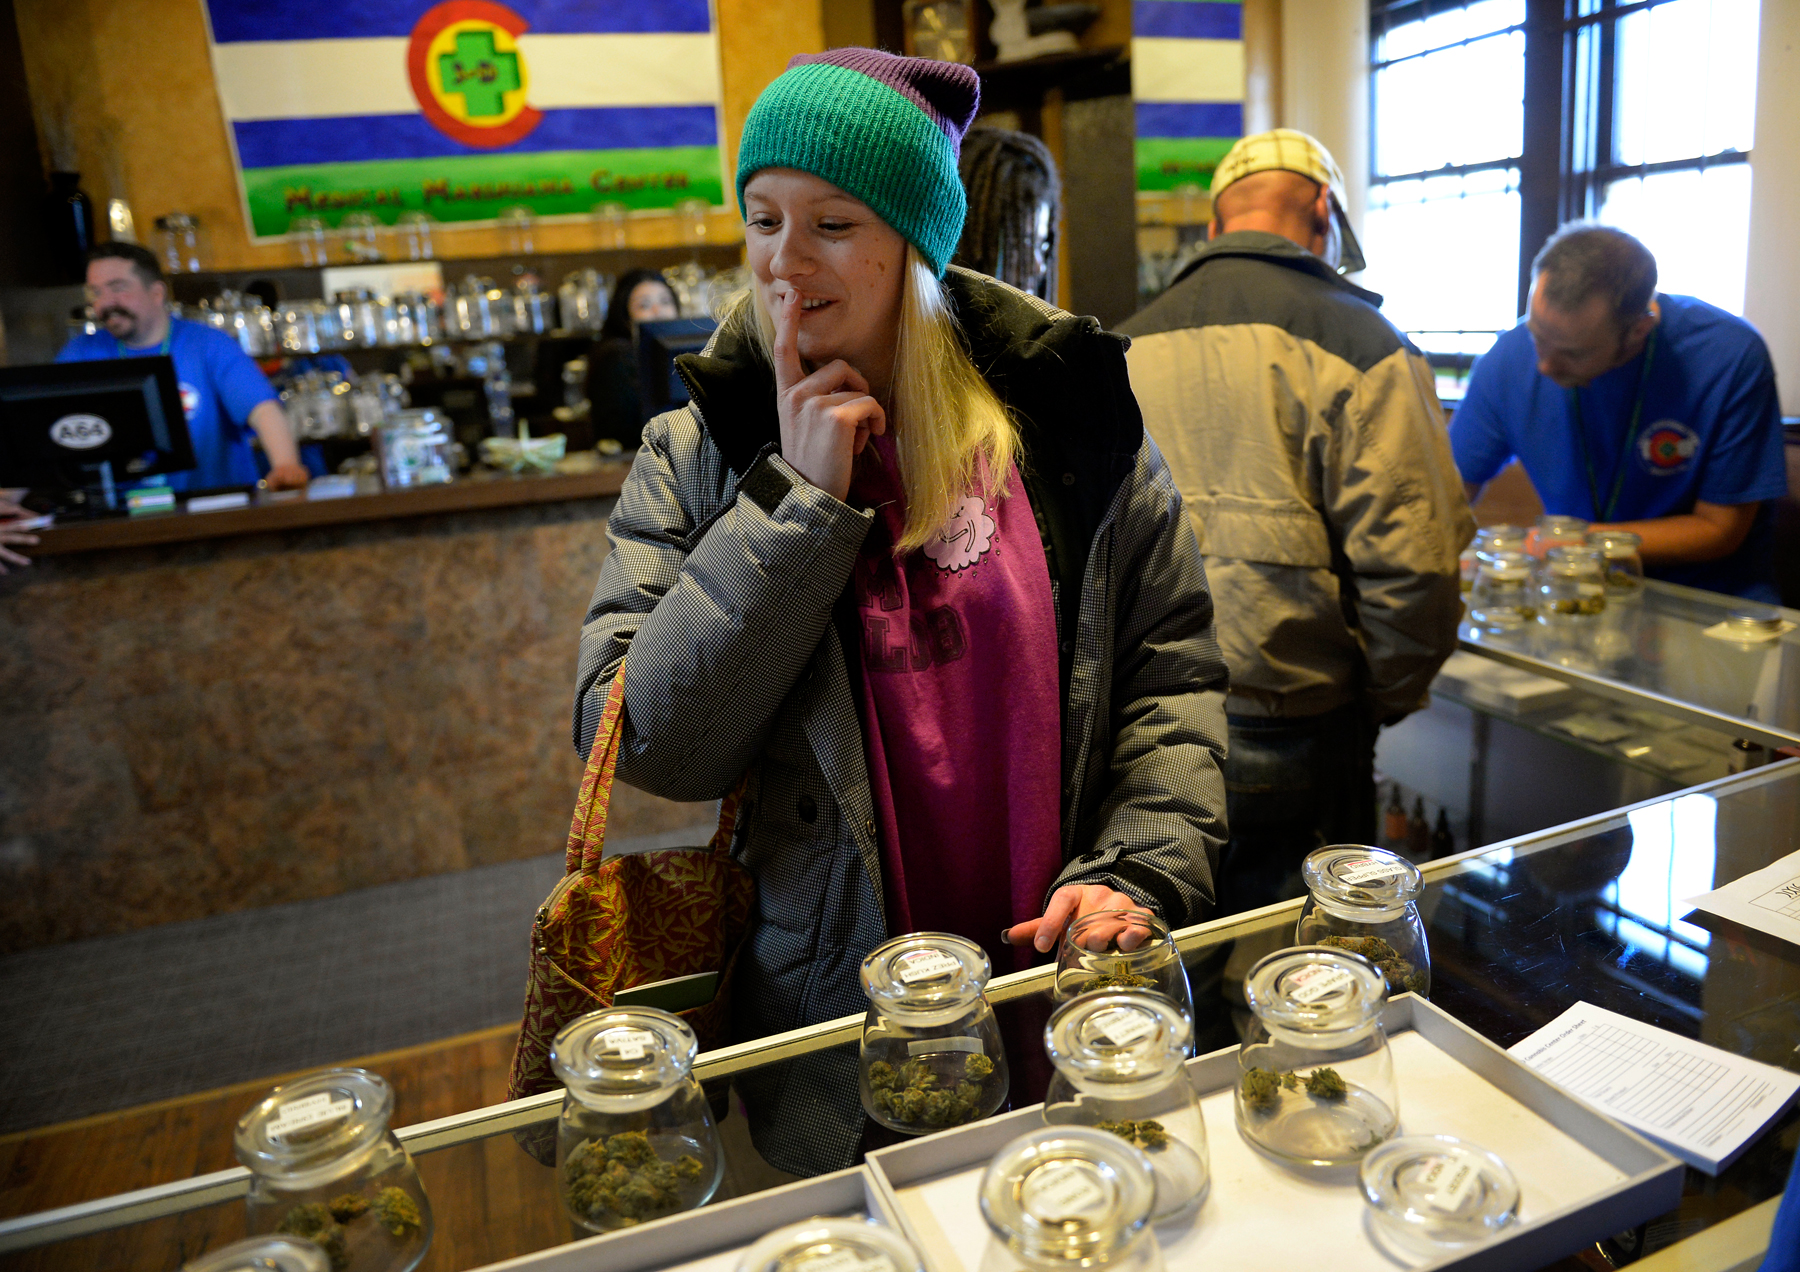 The First Day of Denver's Weed Boom: An Eyewitness' Account